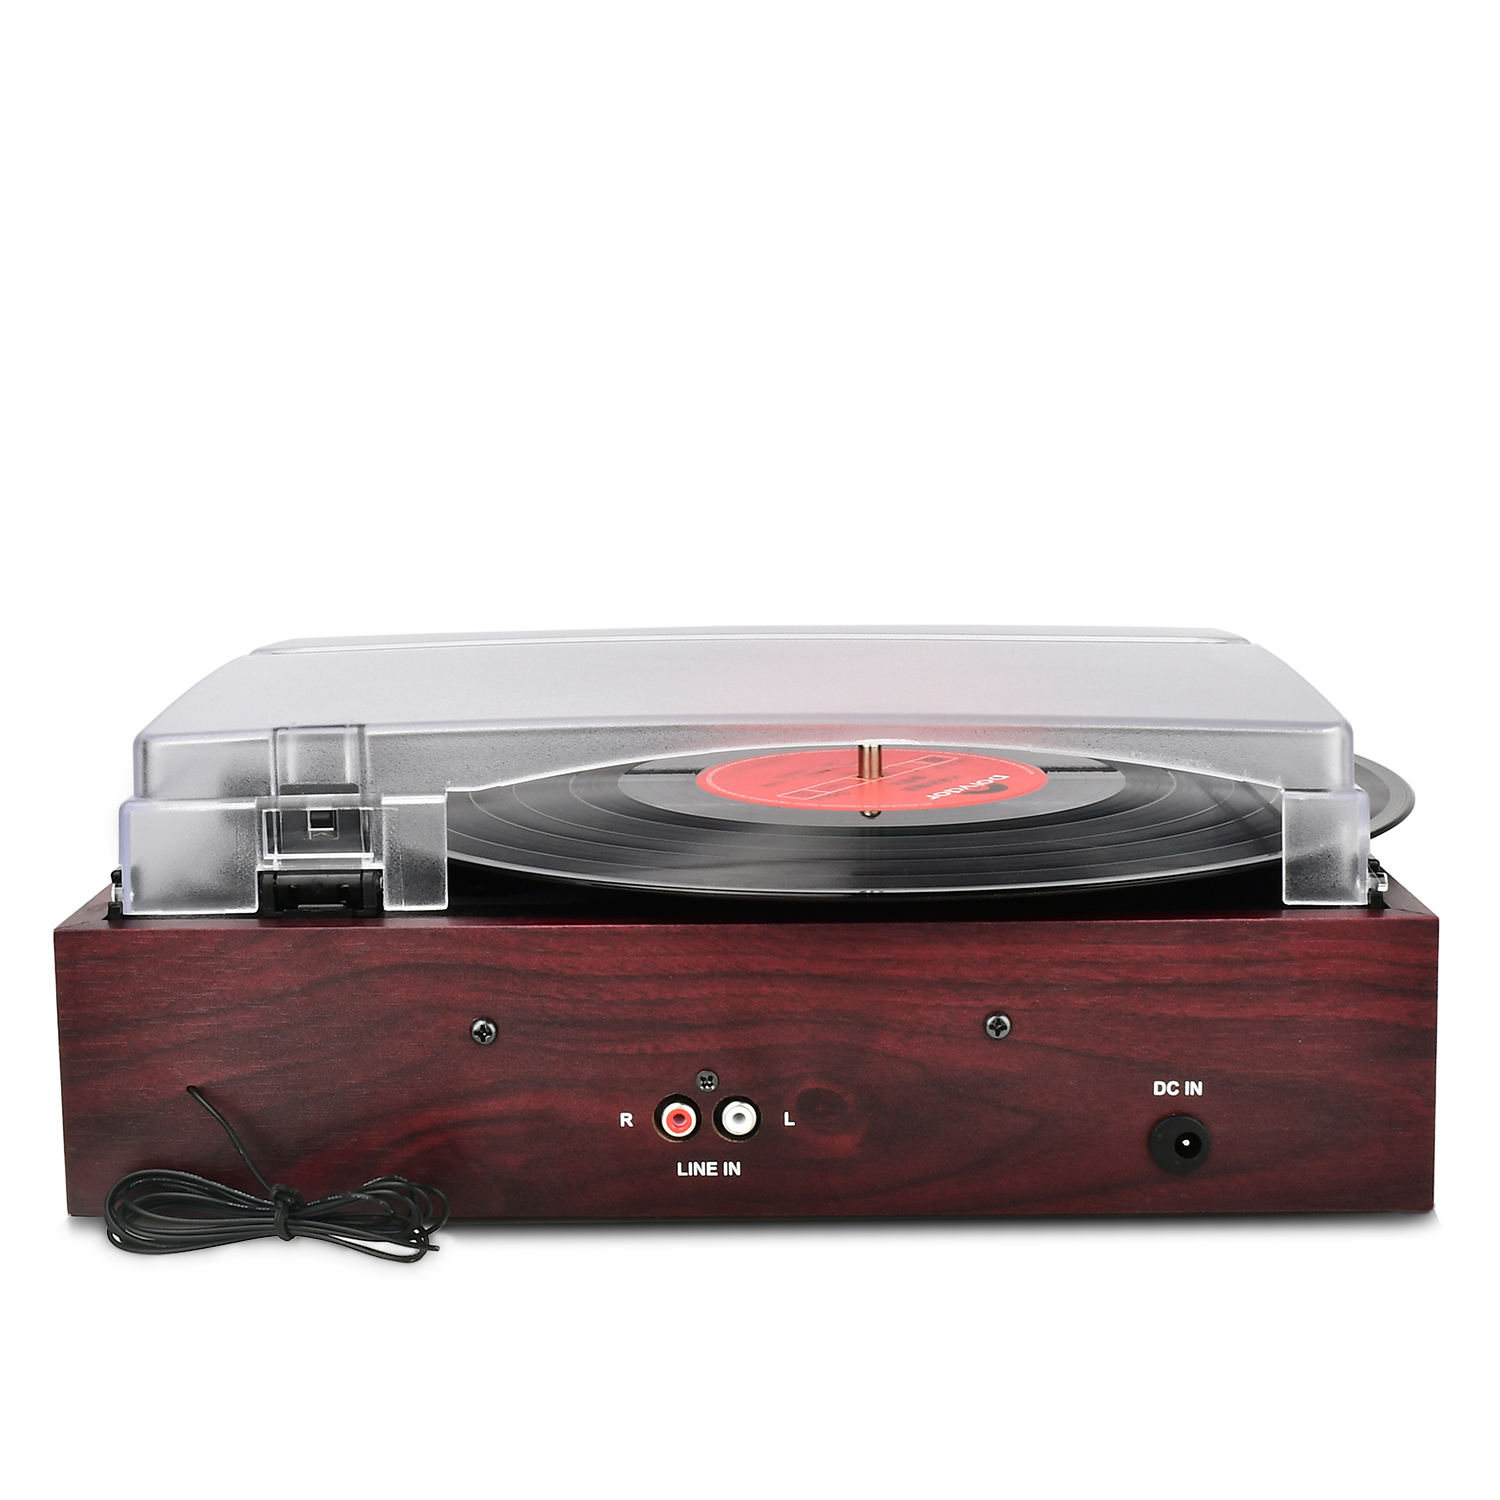 DIGITNOW Wooden 3 Speed Retro Turntable with Built in Dynamic Stereo Speakers,Analog AM/FM Stereo Radio and Audio Source Line in